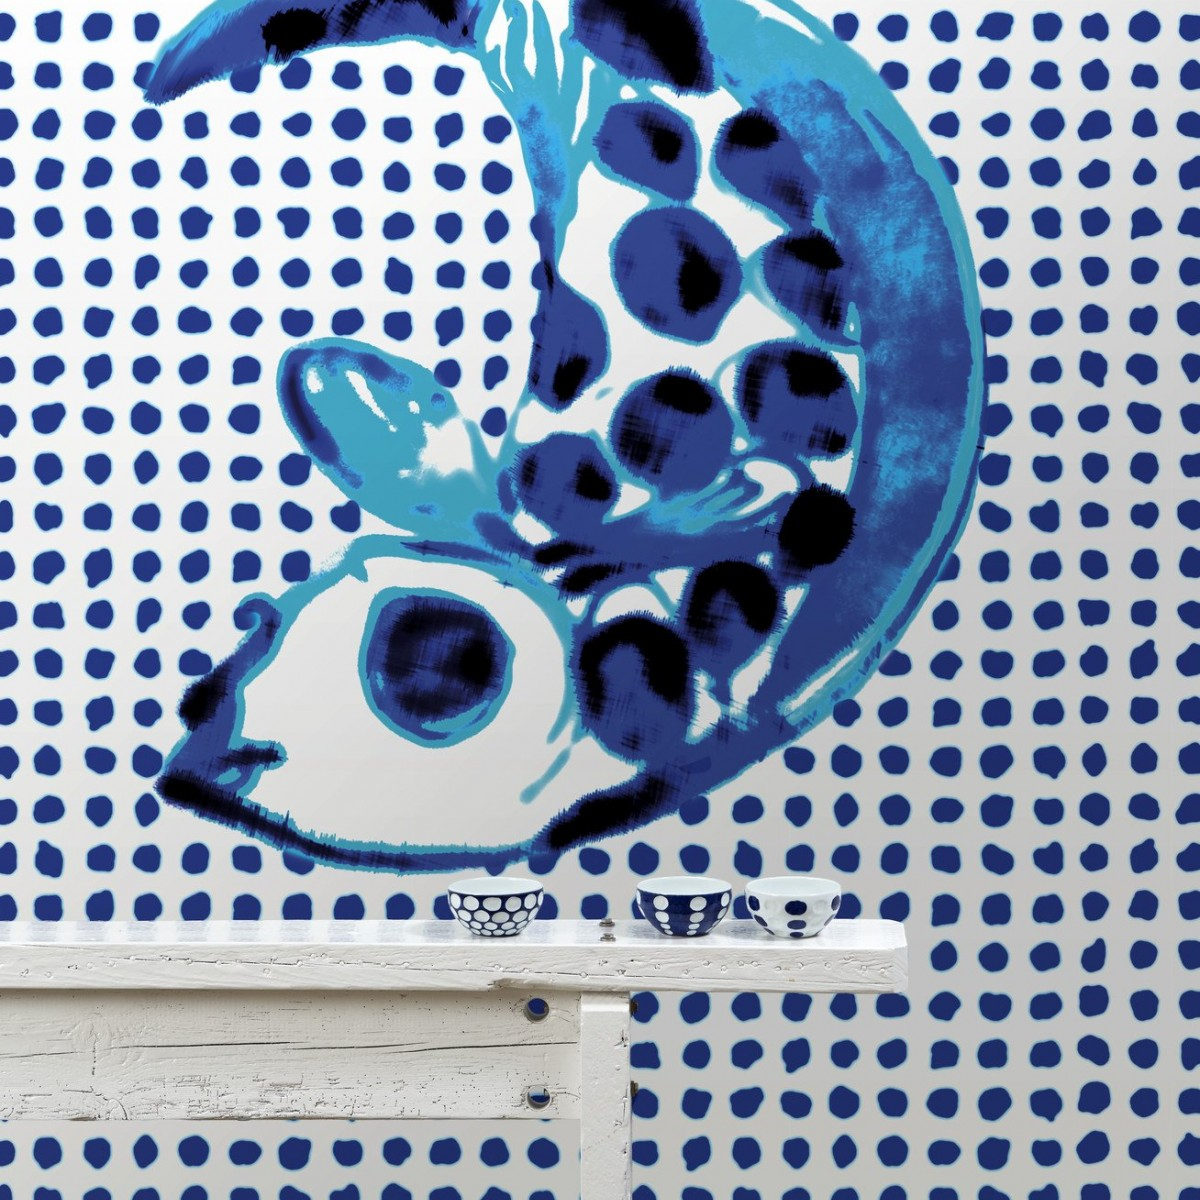 Tapet designer Fish and Dots by Paola Navone, PNO-01, NLXL, 4.8mp / model